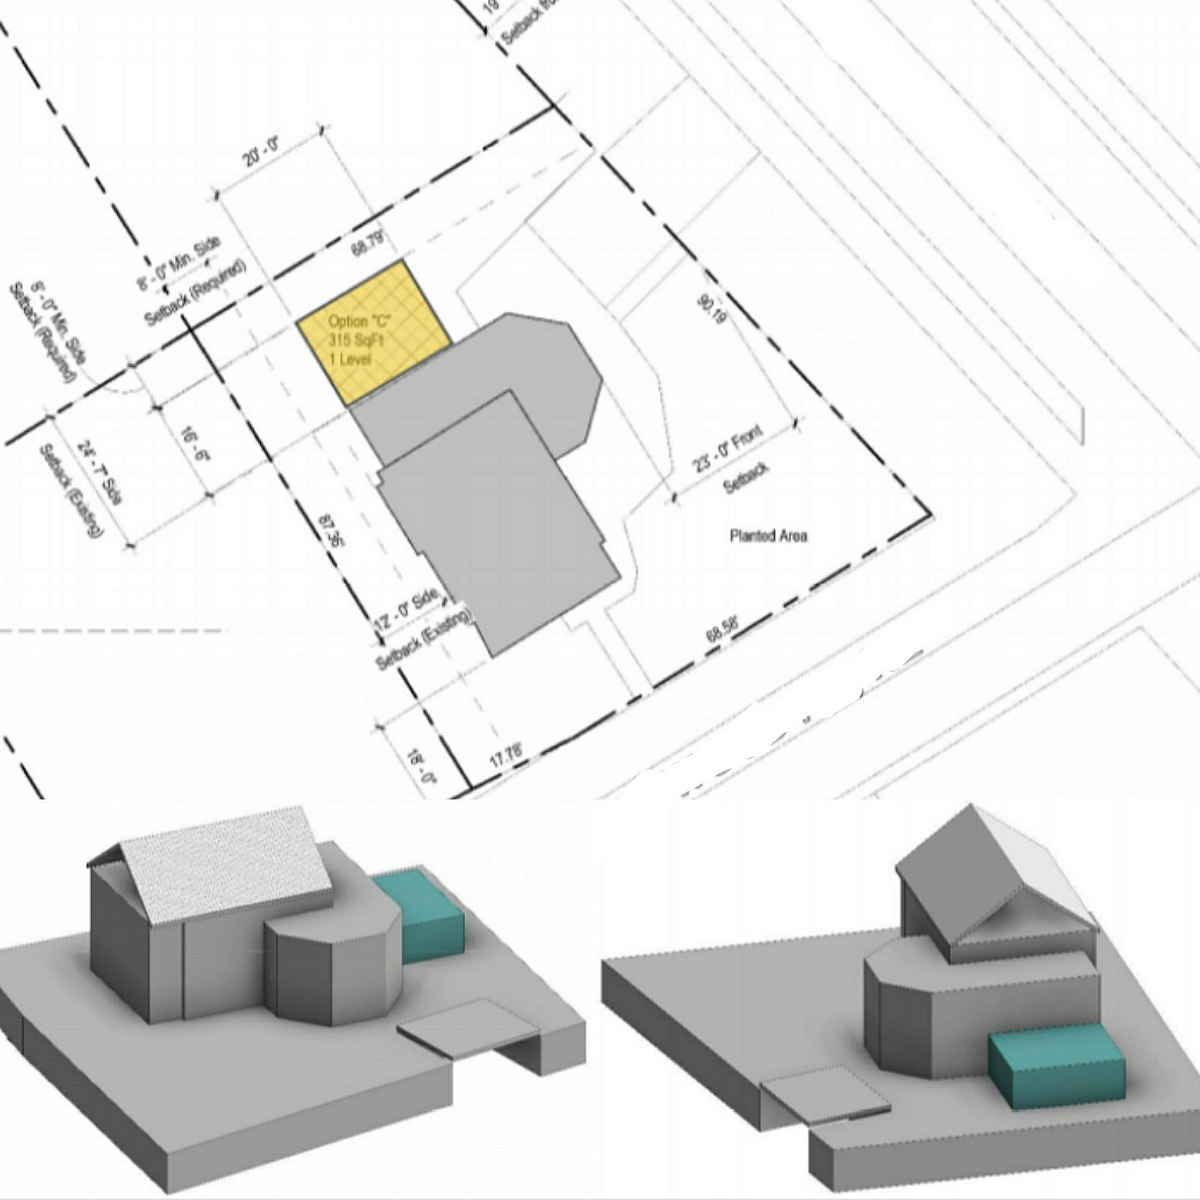 The Essential Guide to Building an Accessory Dwelling Unit in DC: Figure 5